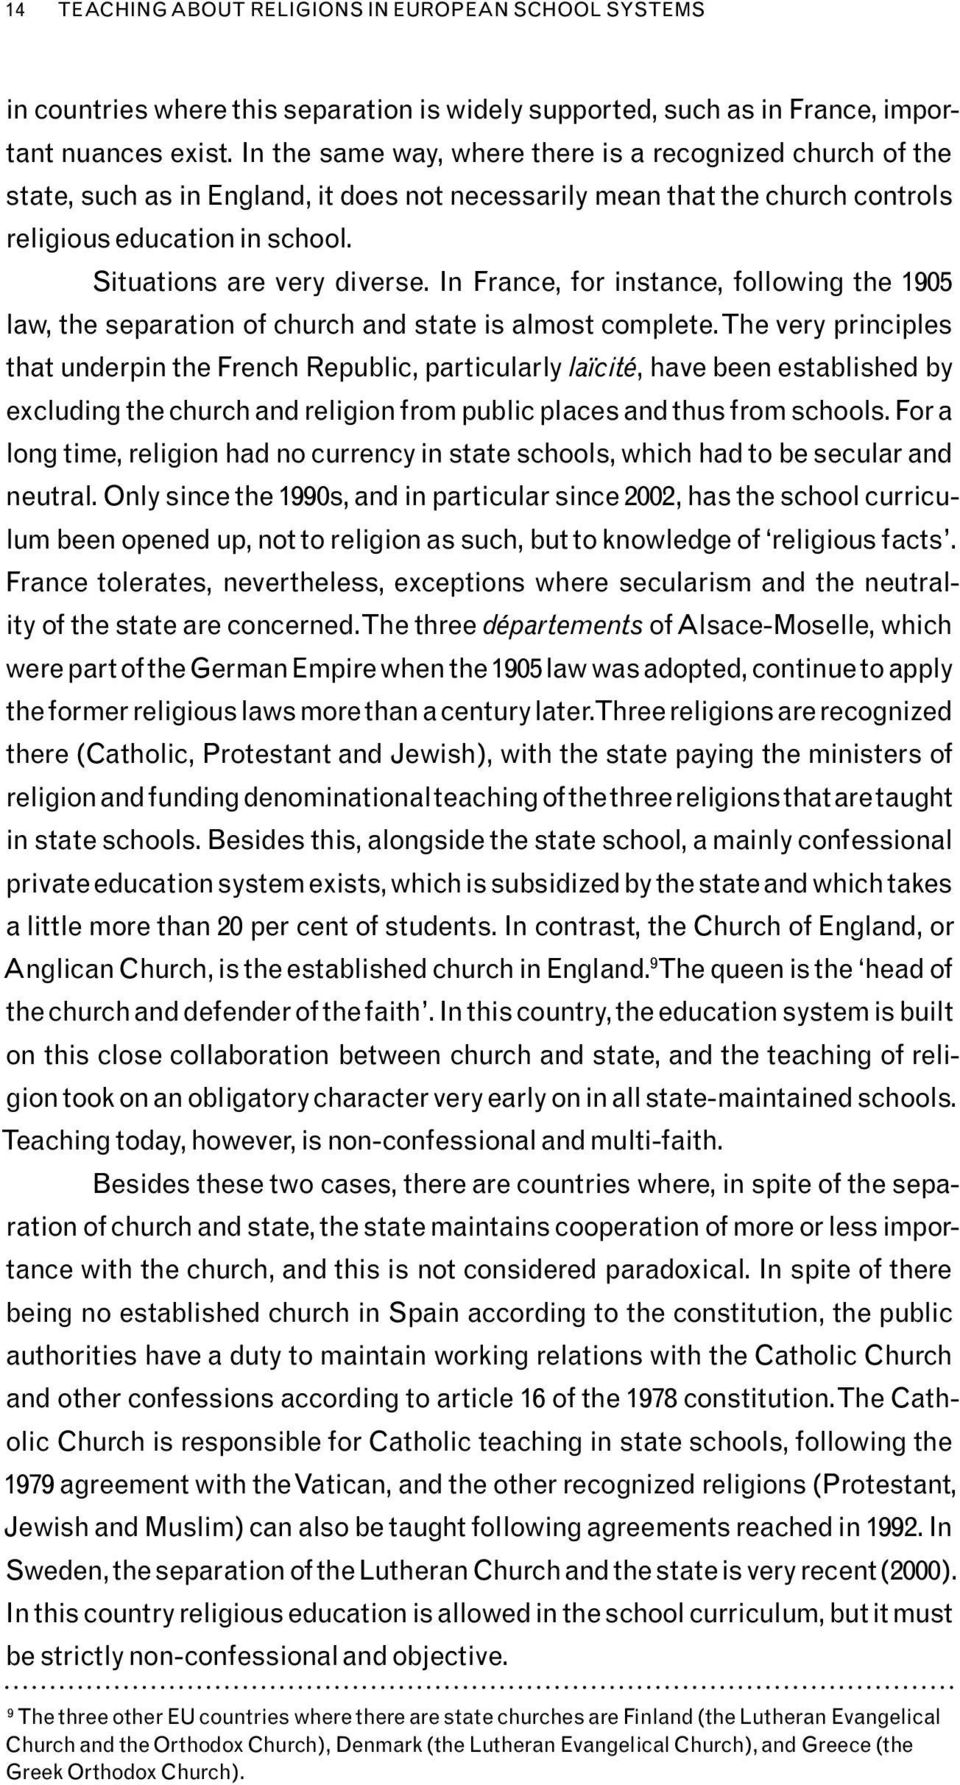 In France, for instance, following the 1905 law, the separation of church and state is almost complete.